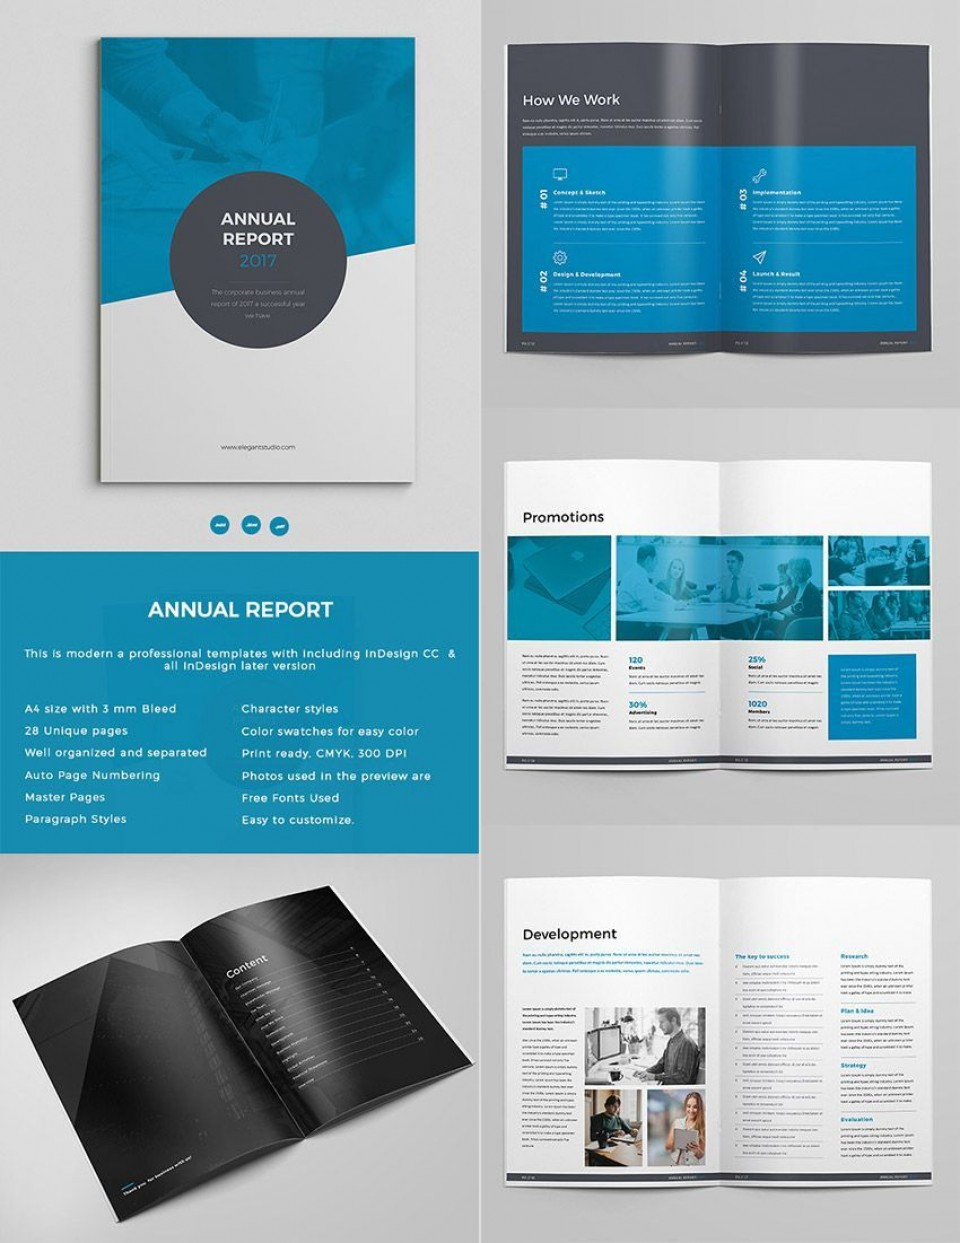 003 Simple Annual Report Design Template Indesign Picture  Free Download960